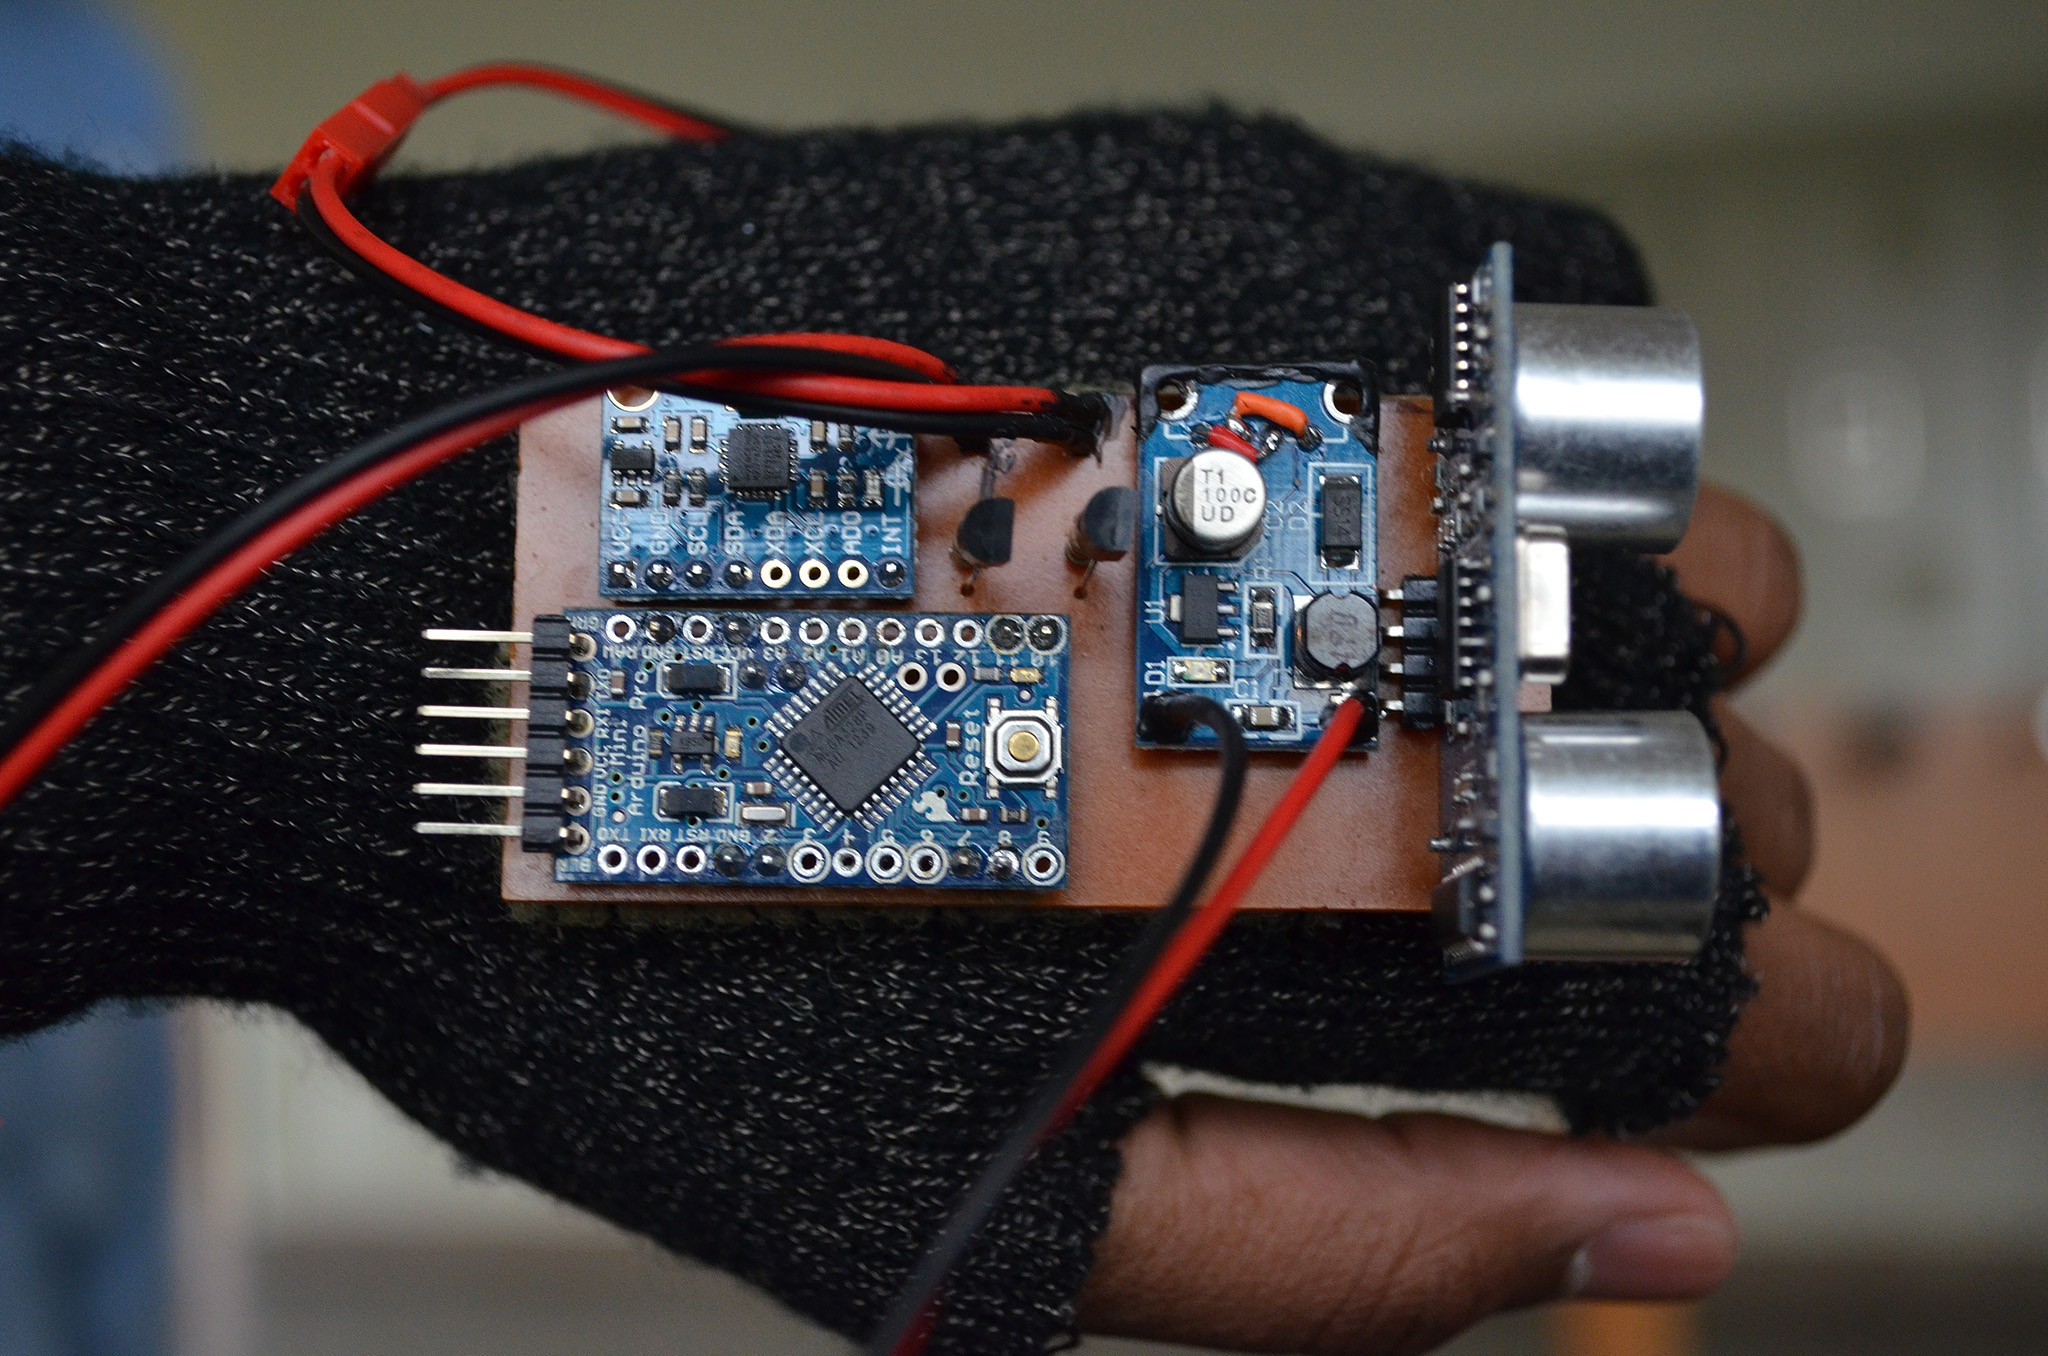 Wrist worn ping sensor assists the blind with navigation